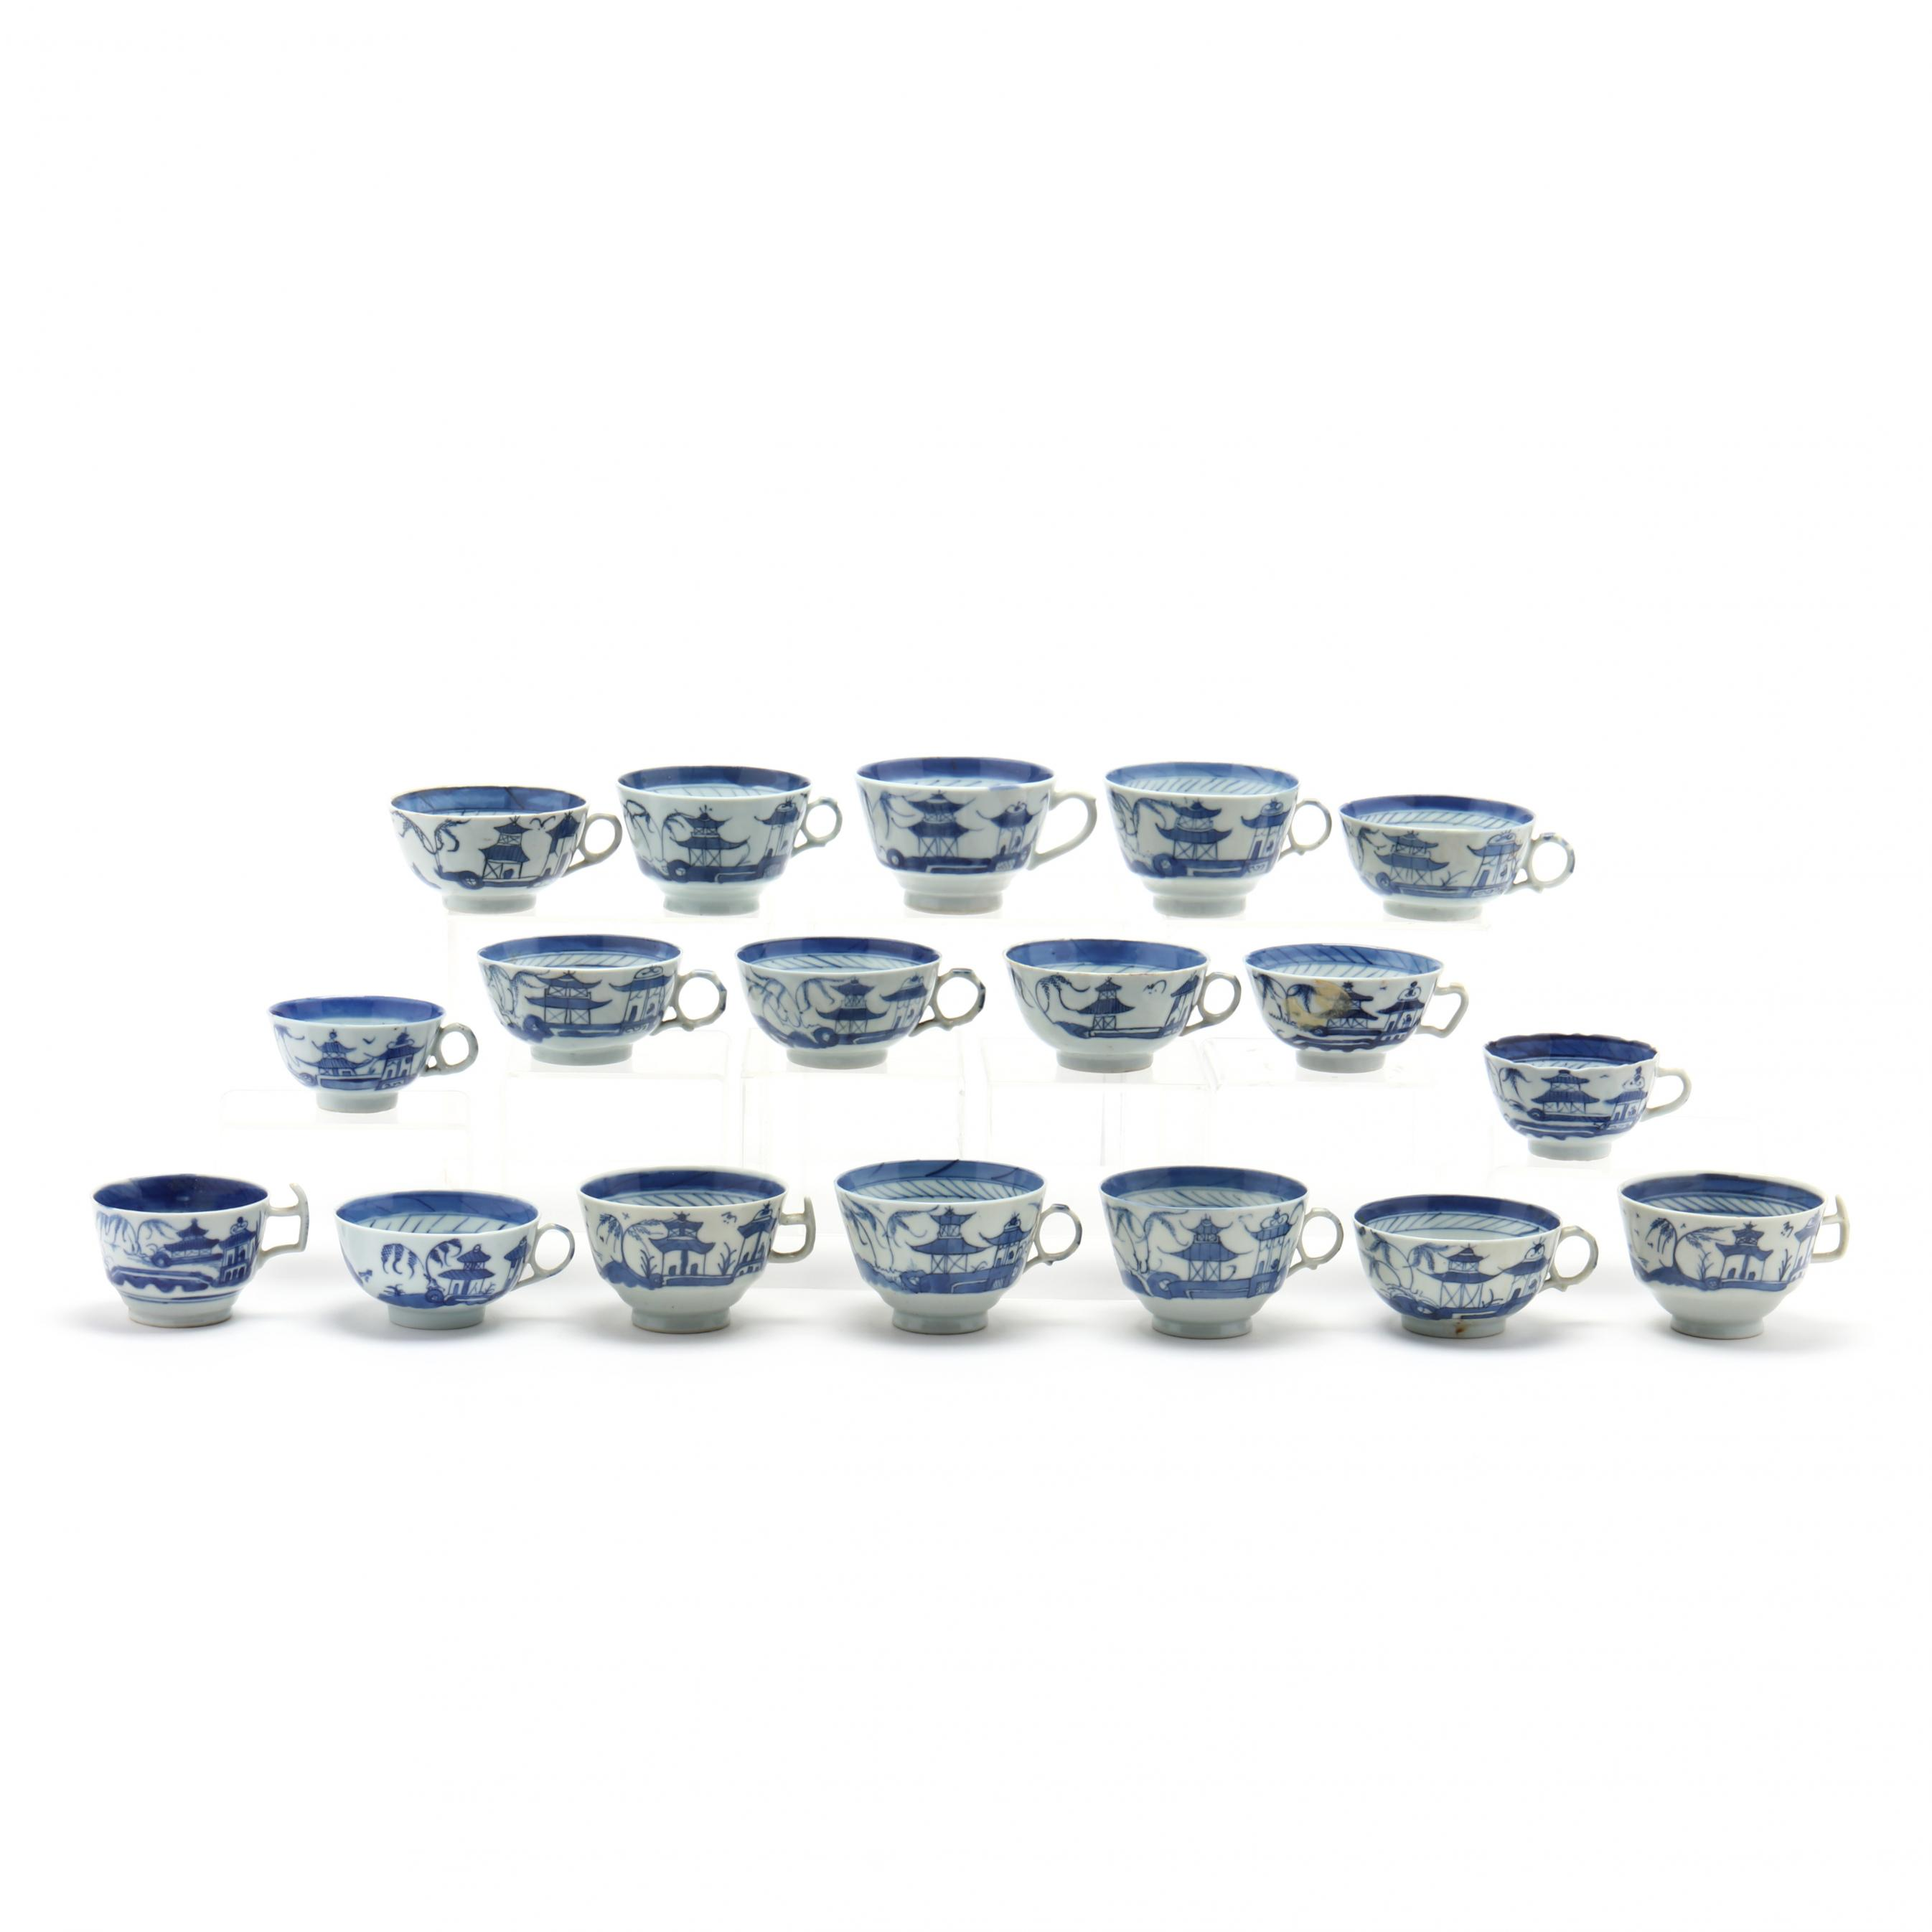 a-group-of-18-chinese-blue-and-white-canton-style-tea-cups